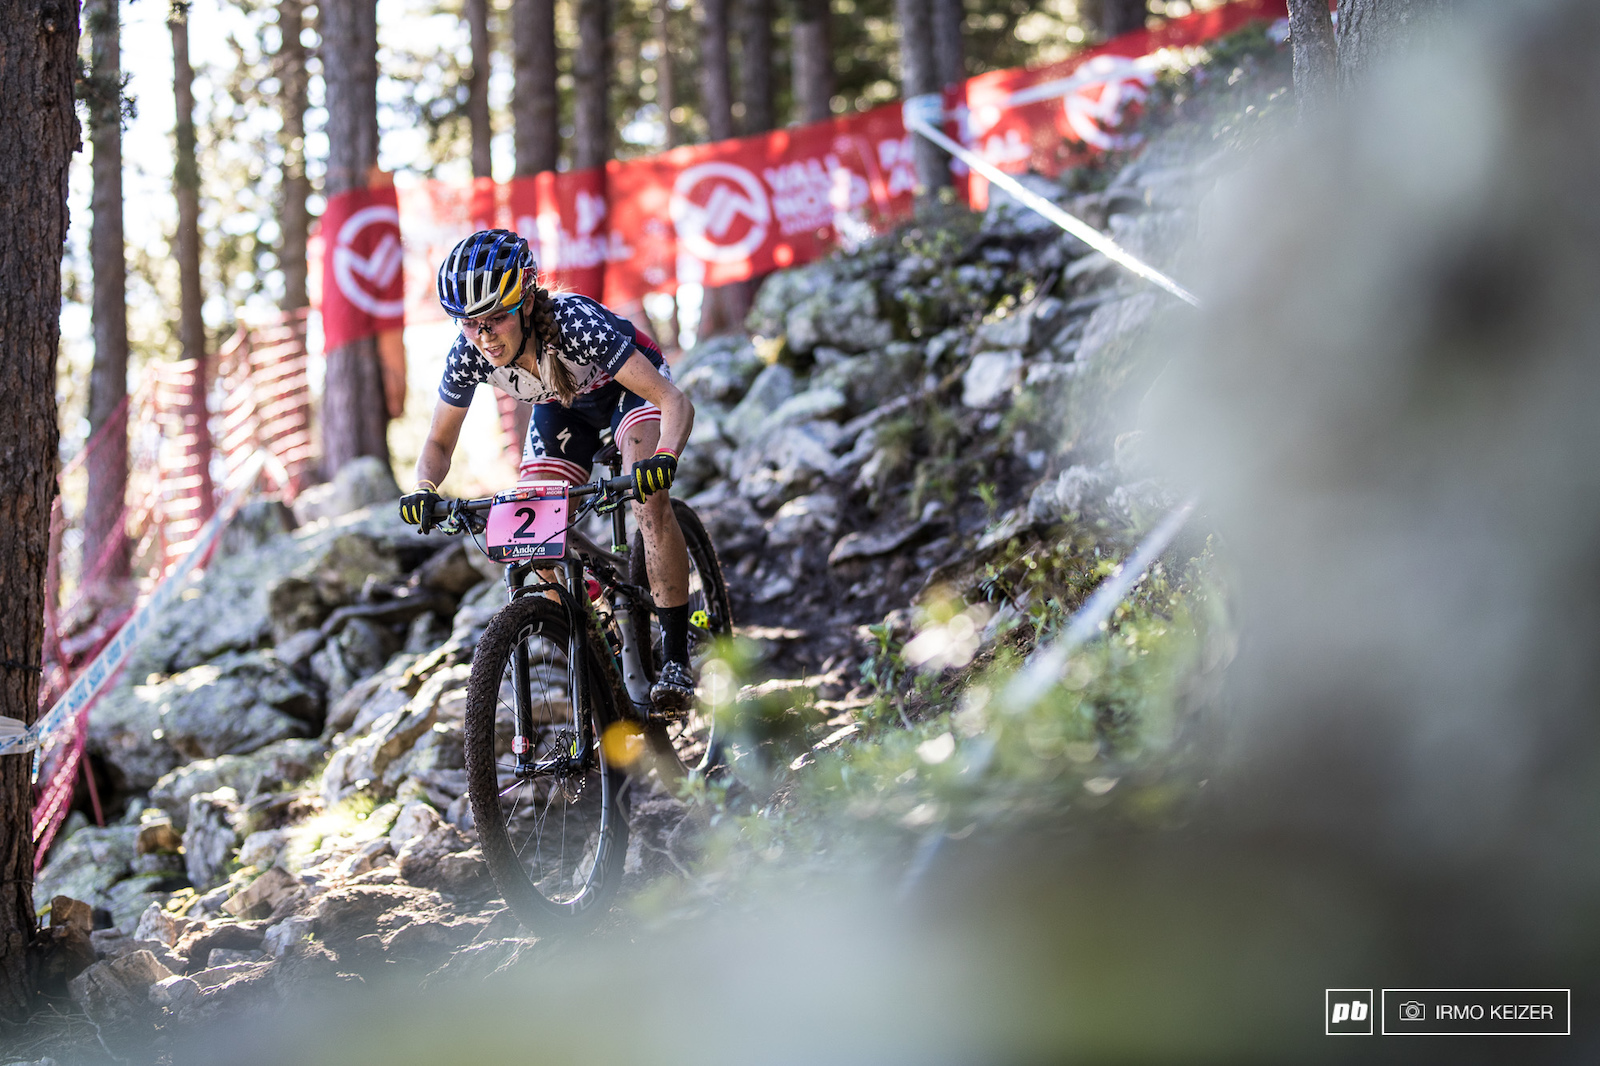 Kate Courtney rode smoothly in the slippery downhills.